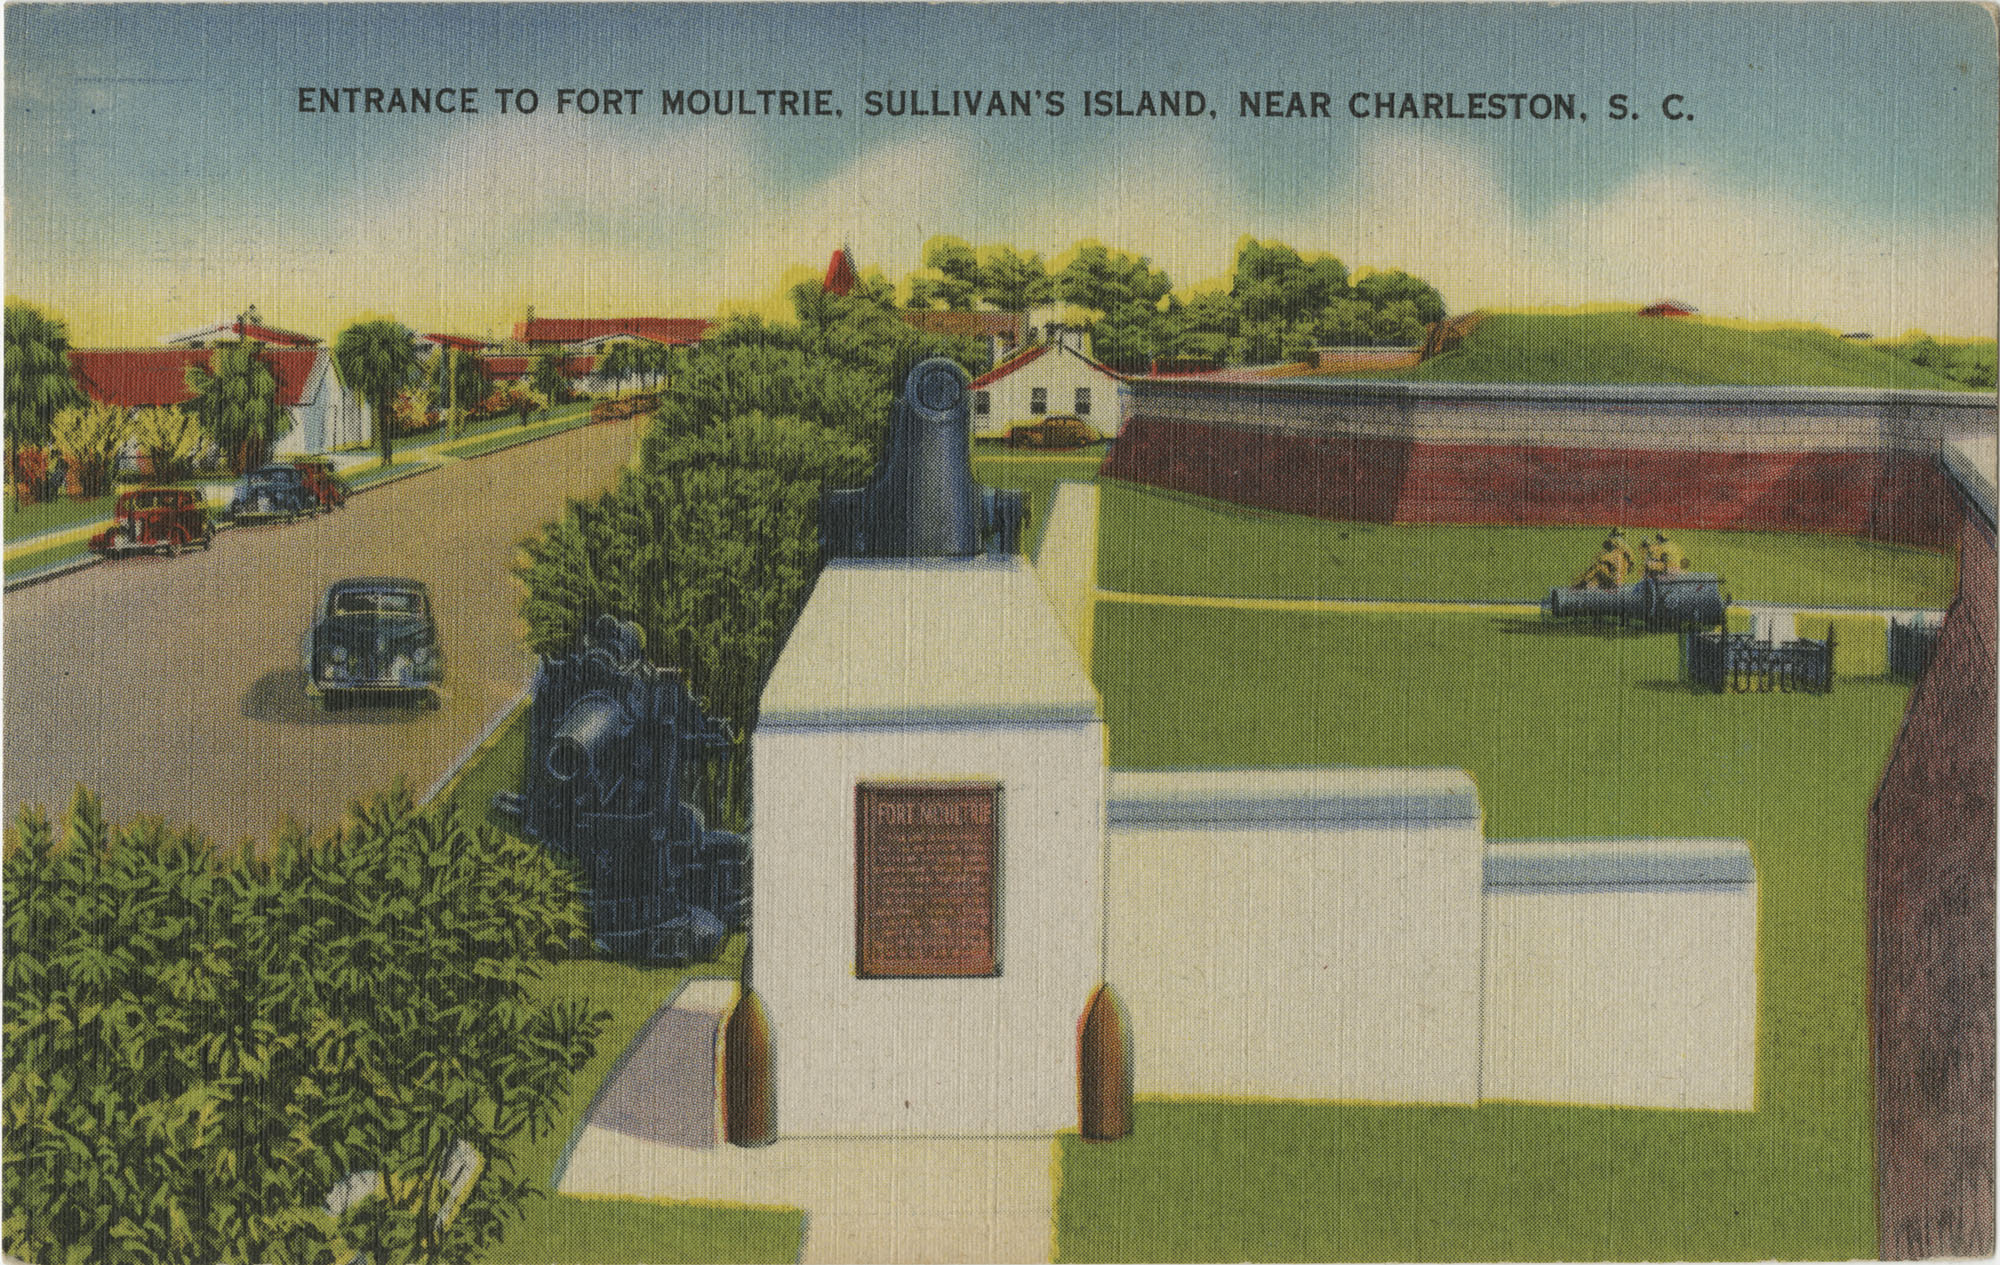 Entrance to Fort Moultrie, Sullivan's Island, Near Charleston, S.C.